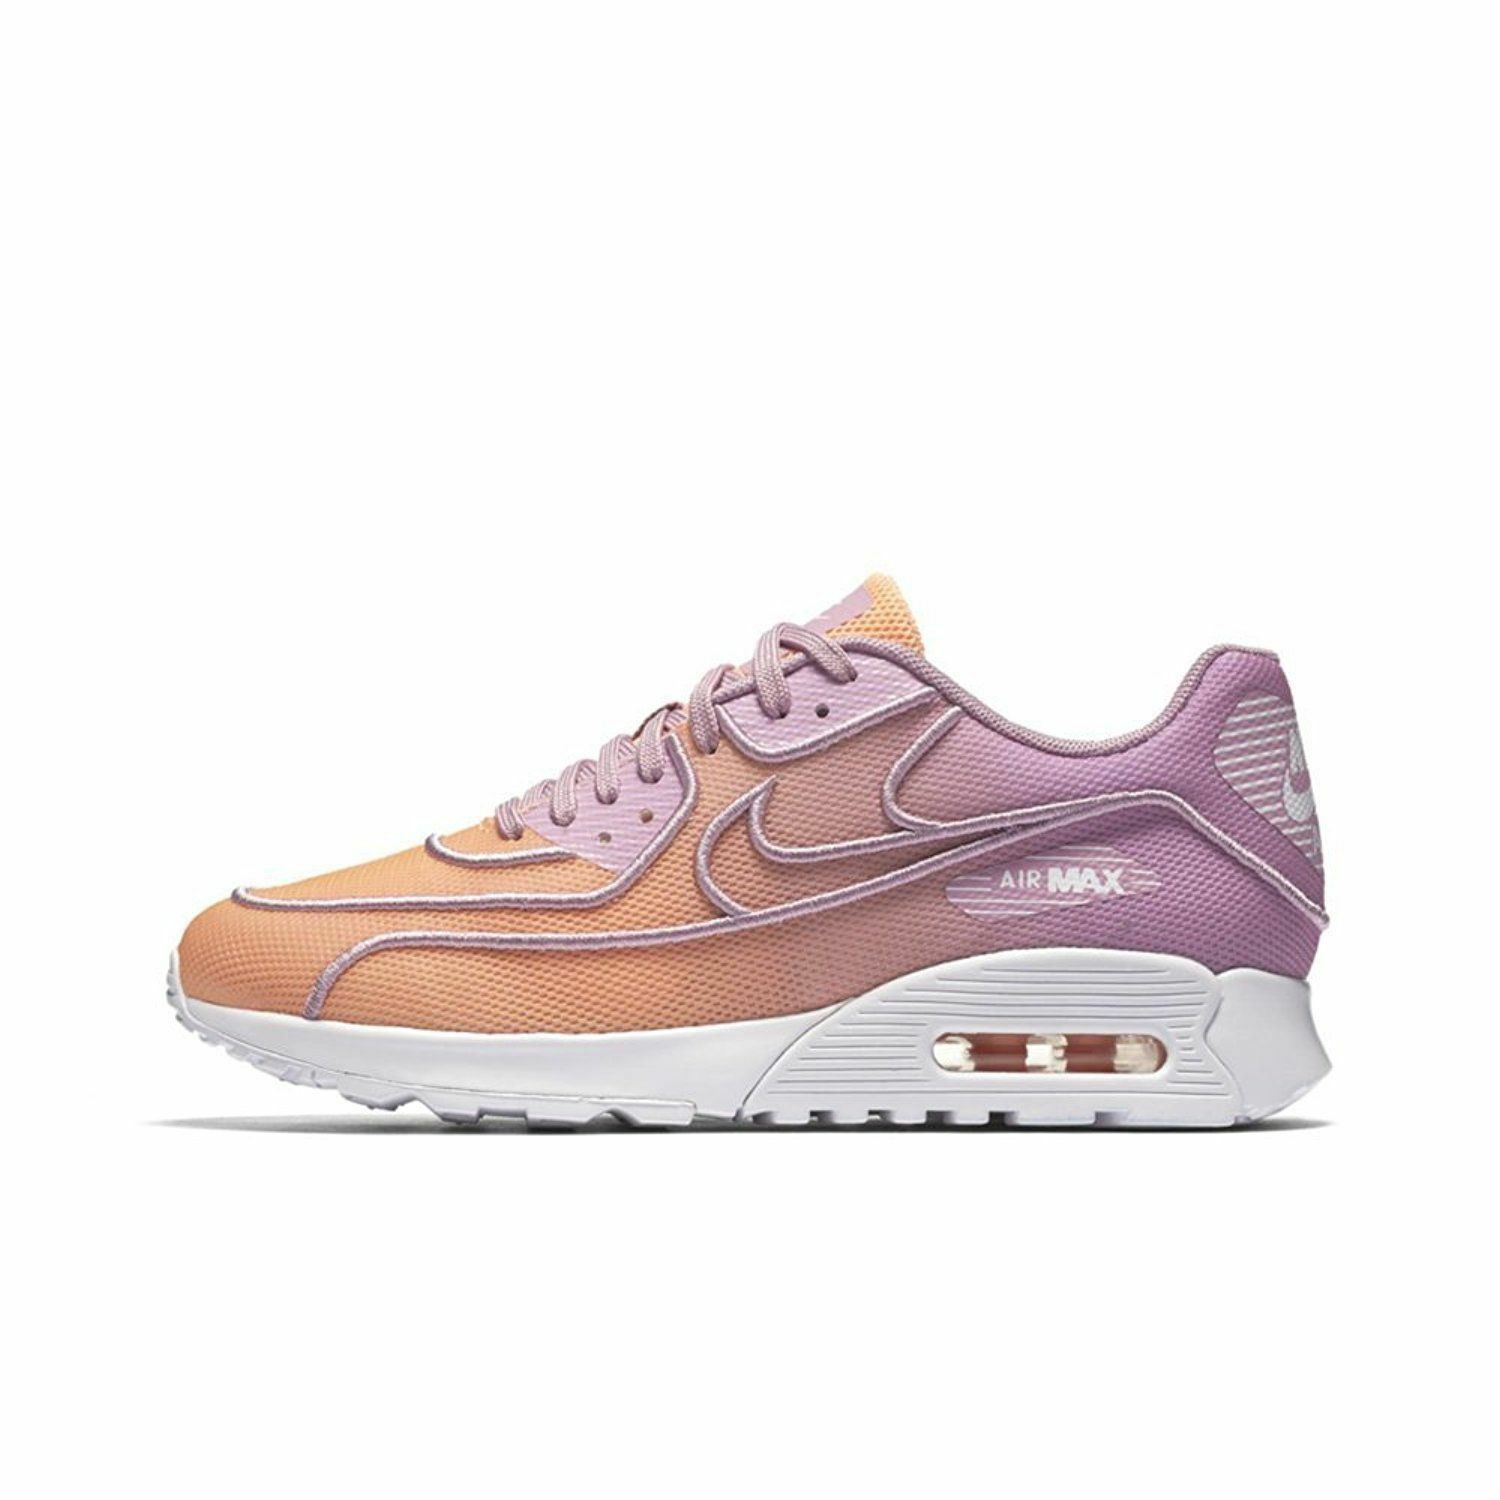 Nike Air Max 90 Ultra 2.0 Br Sunset Glow/Sunset Glow-Orchid 917523 800 Wmn Sz 6 Great discount